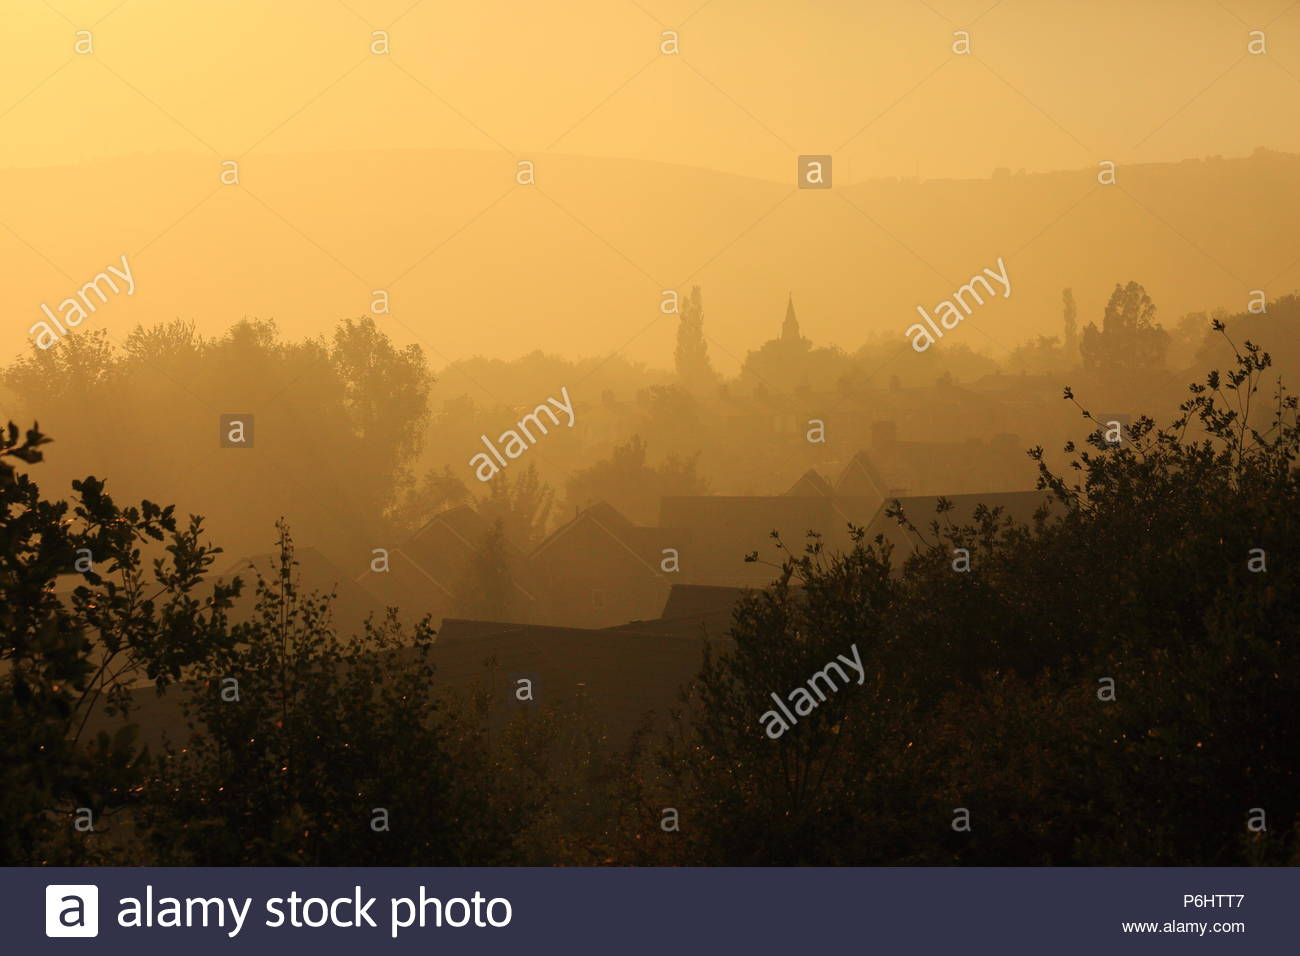 The Neighbouring Town Of Mossley Is Engulfed In Dense Smoke From The Fires Over Saddleworth Moor, Saddleworth, Oldham, Greater Manchester Summer 2018 - Stock Image